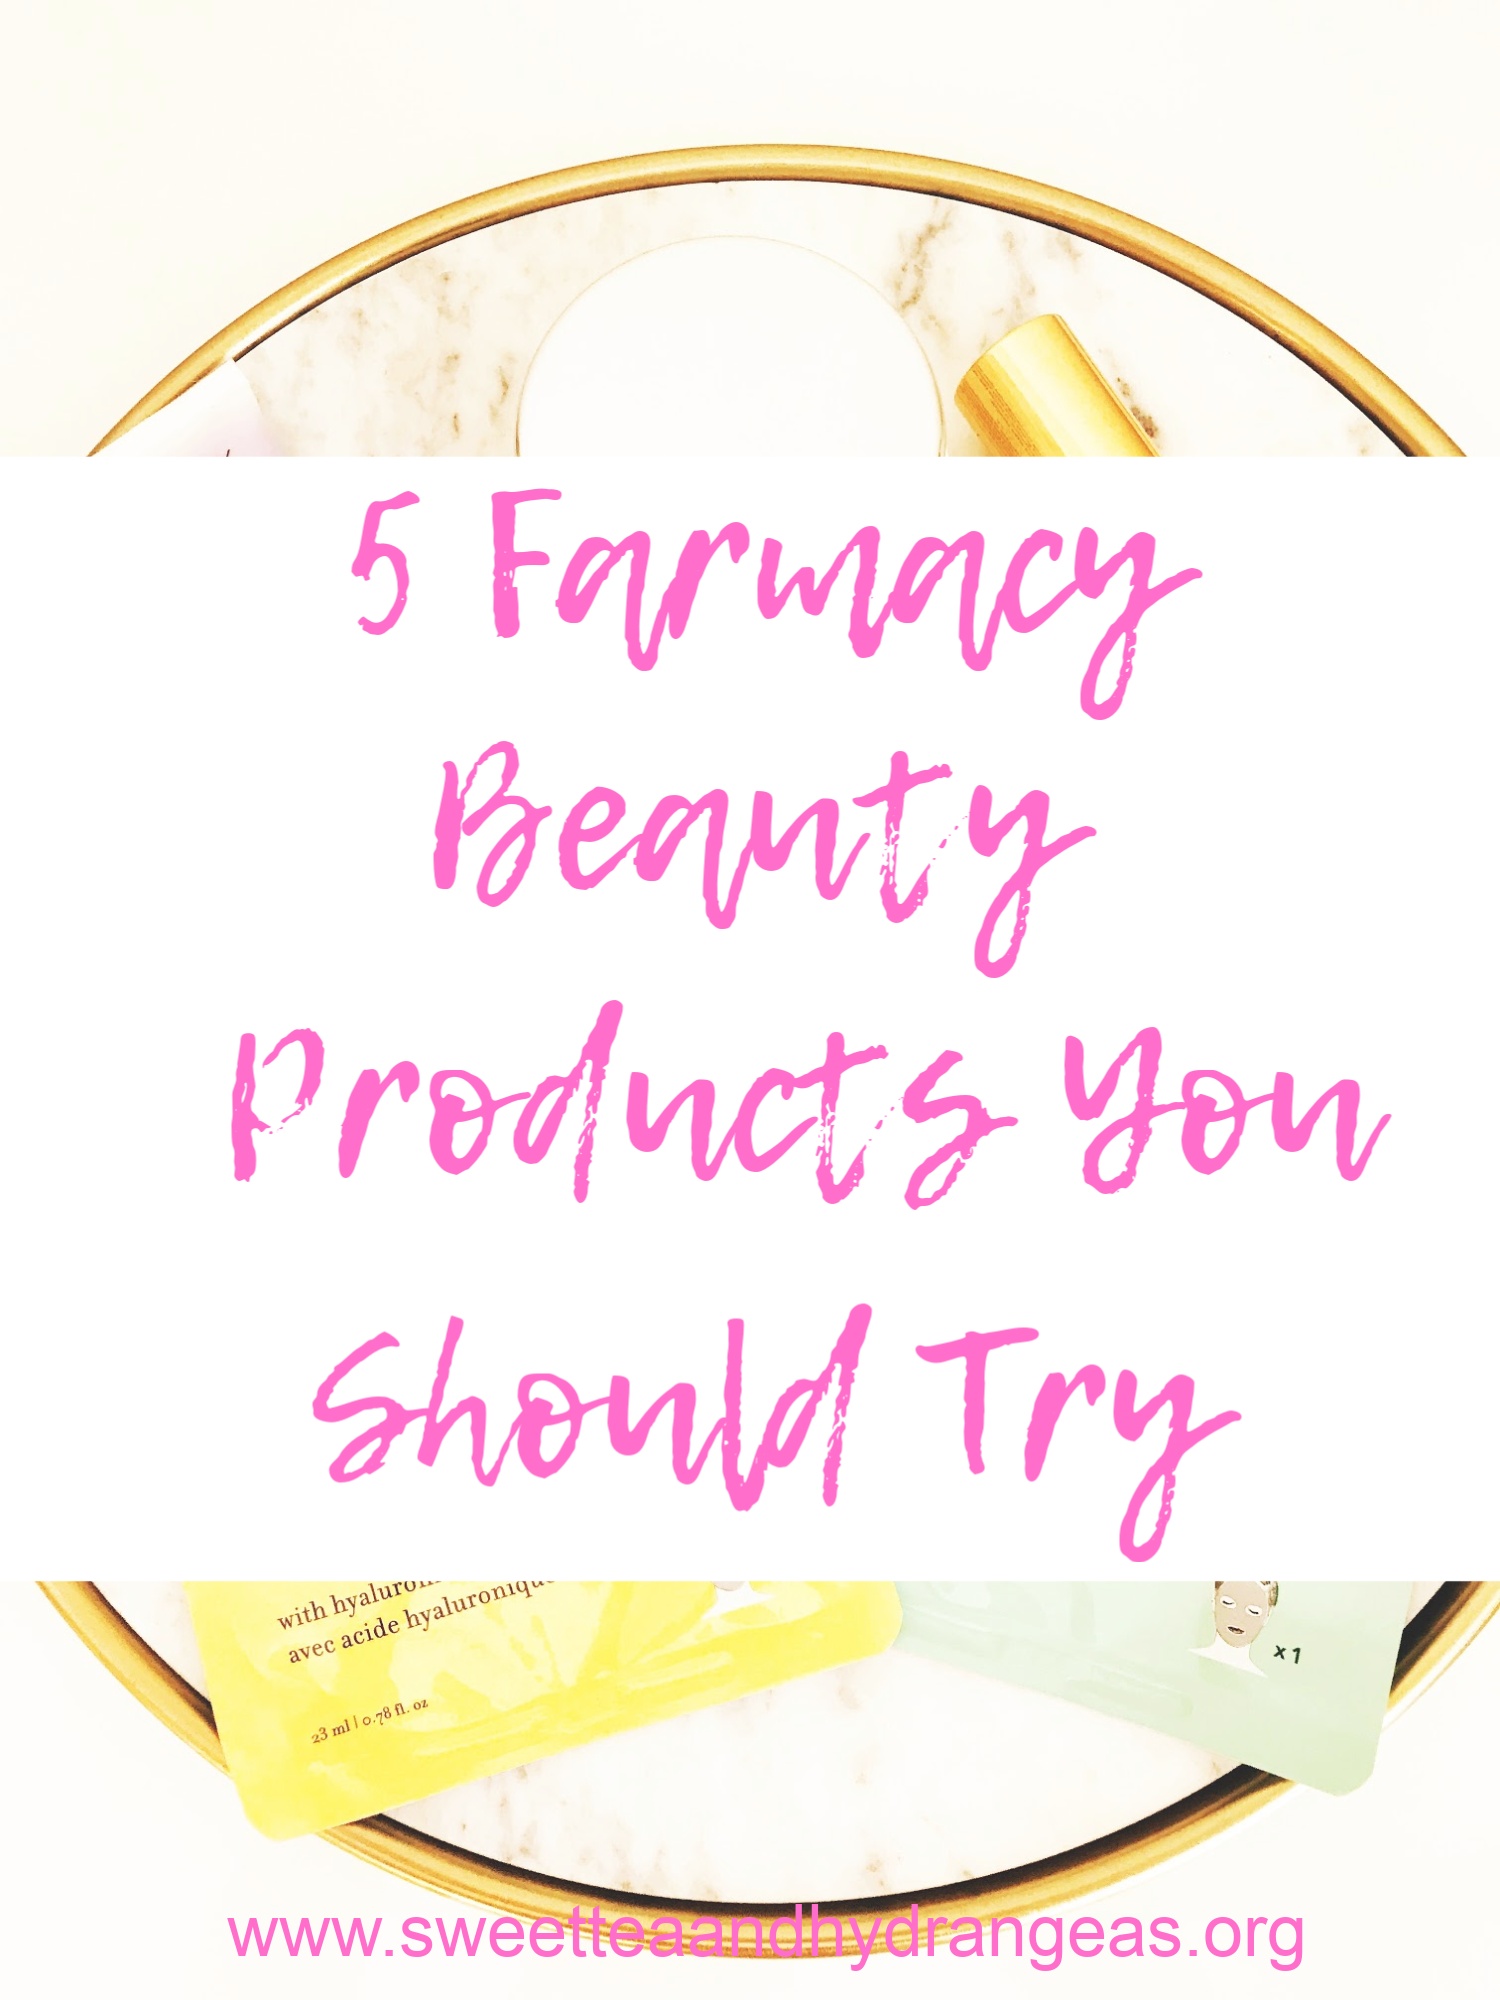 STH 5 Farmacy Beauty Products You Should Try